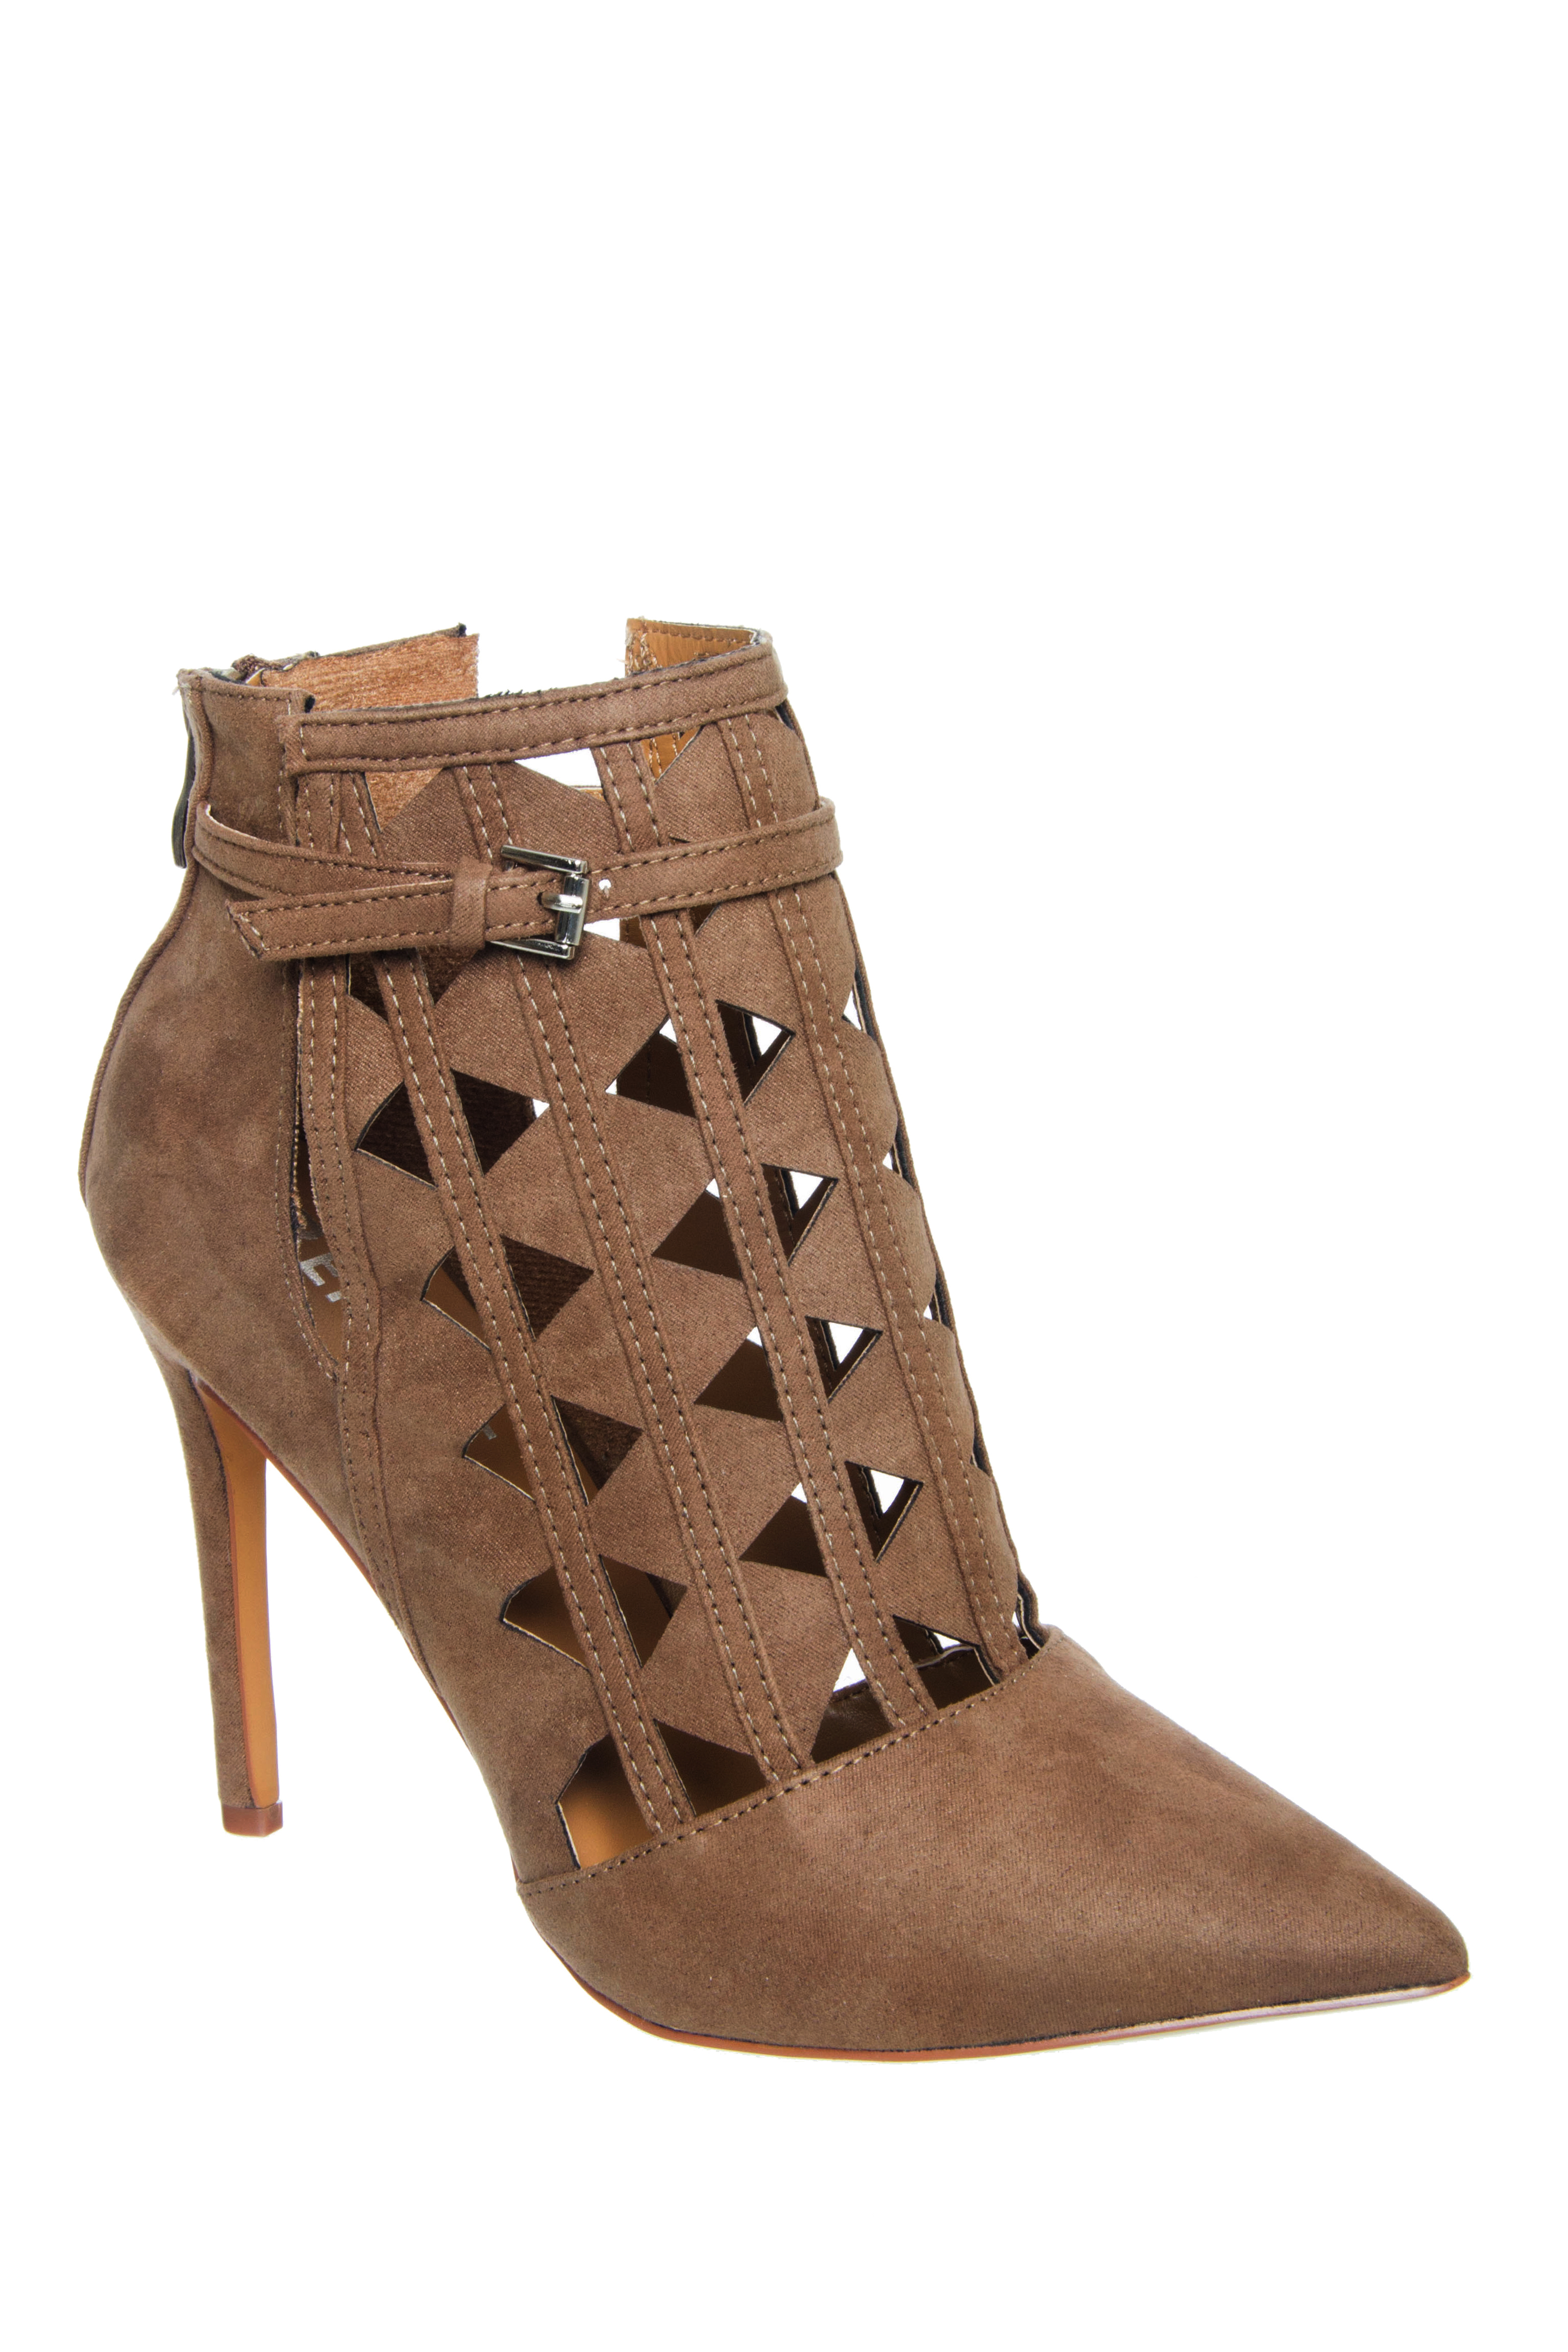 Report Fleure Cut Out Heels - Taupe